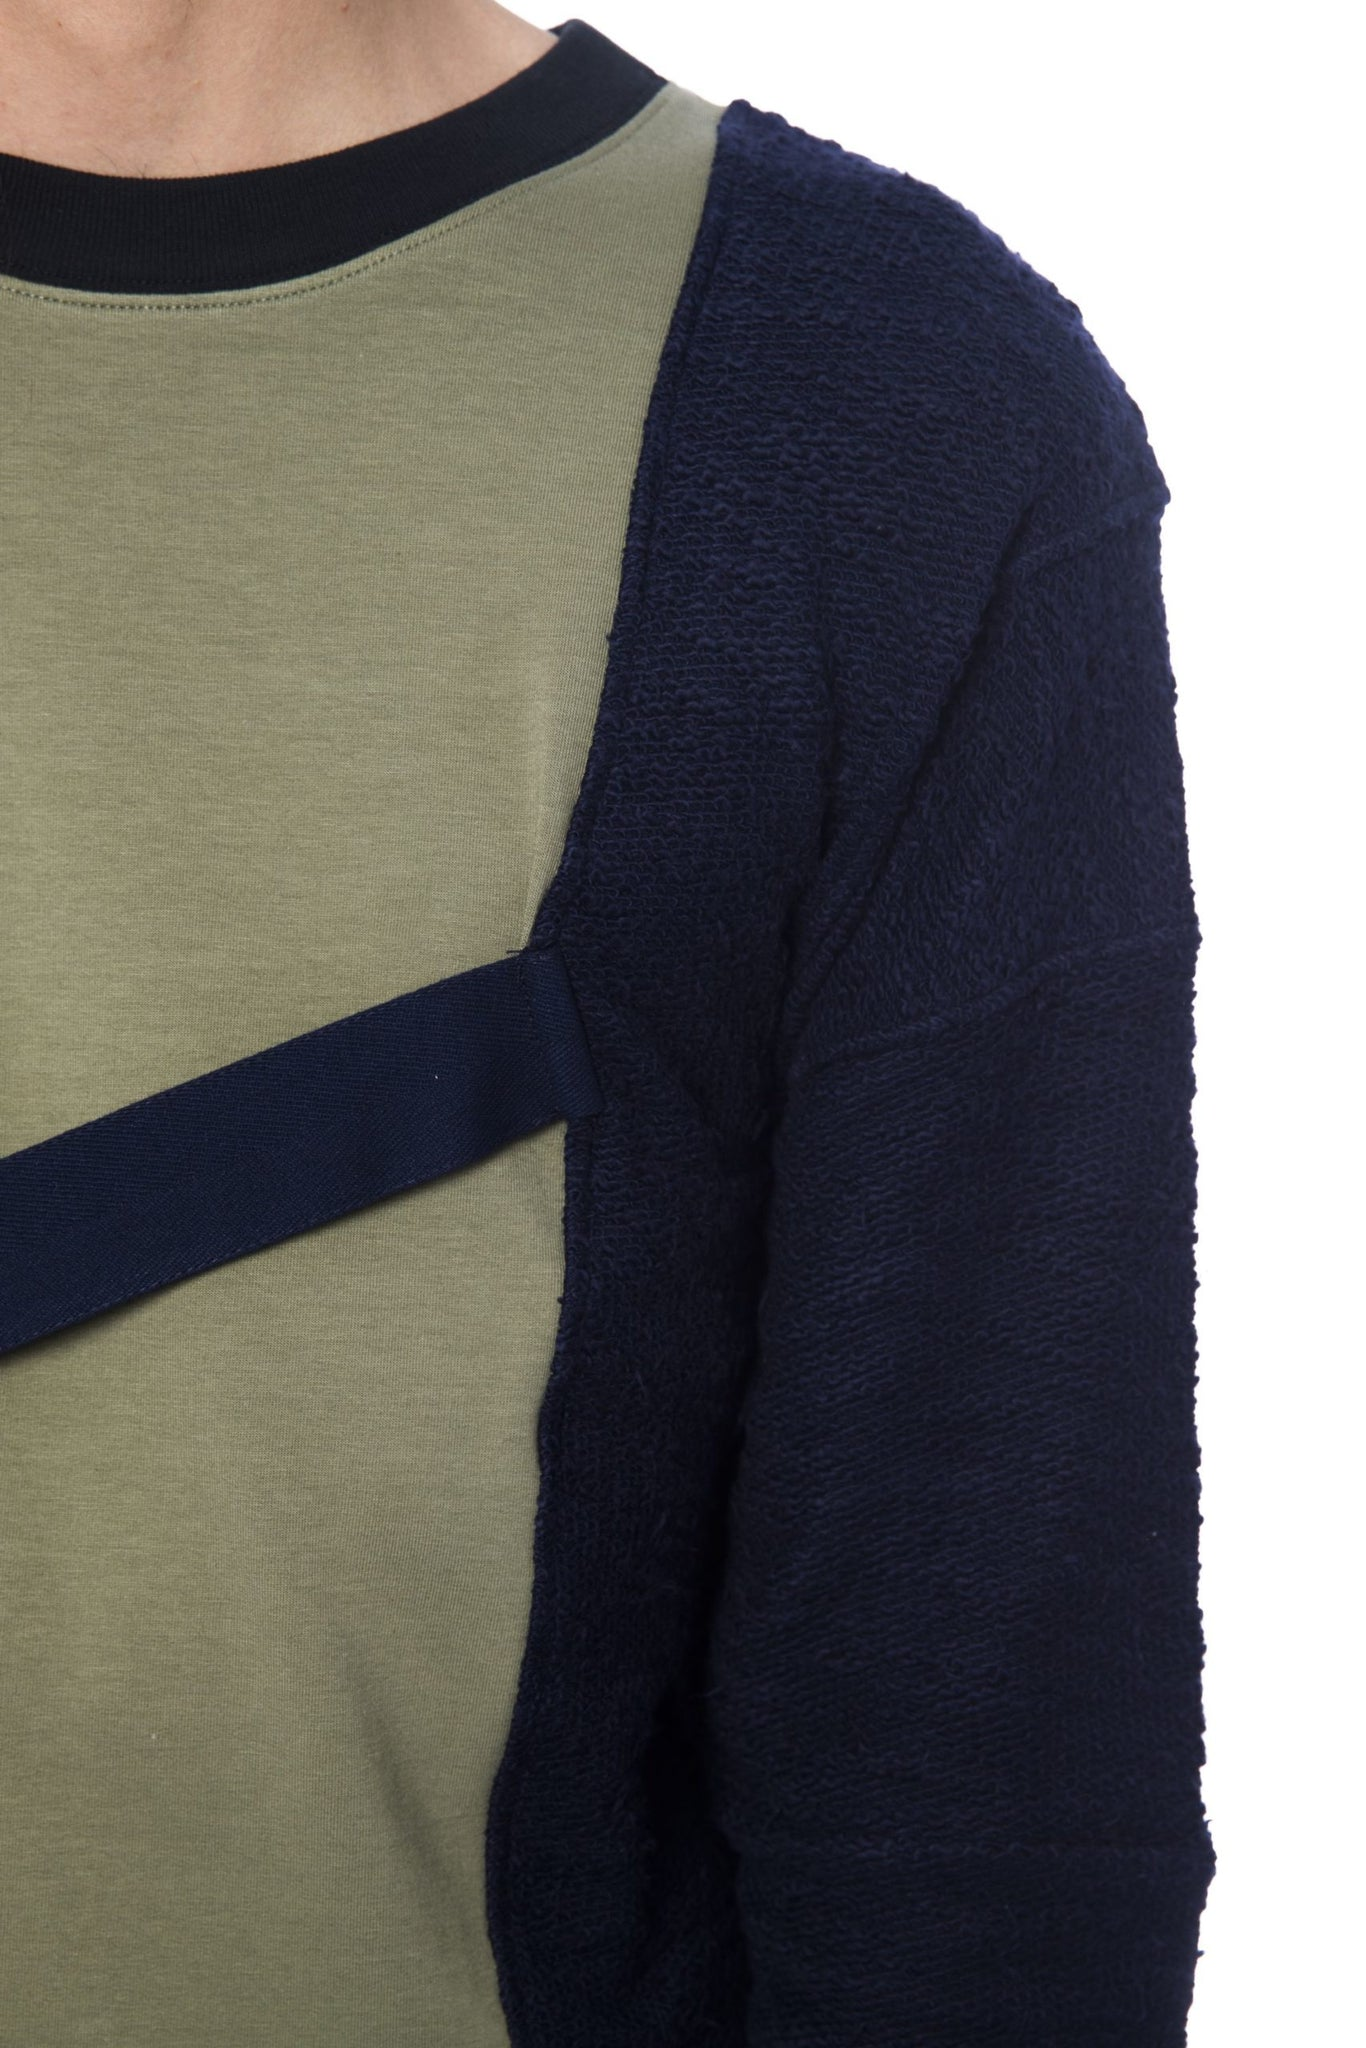 Army Blue Sweater